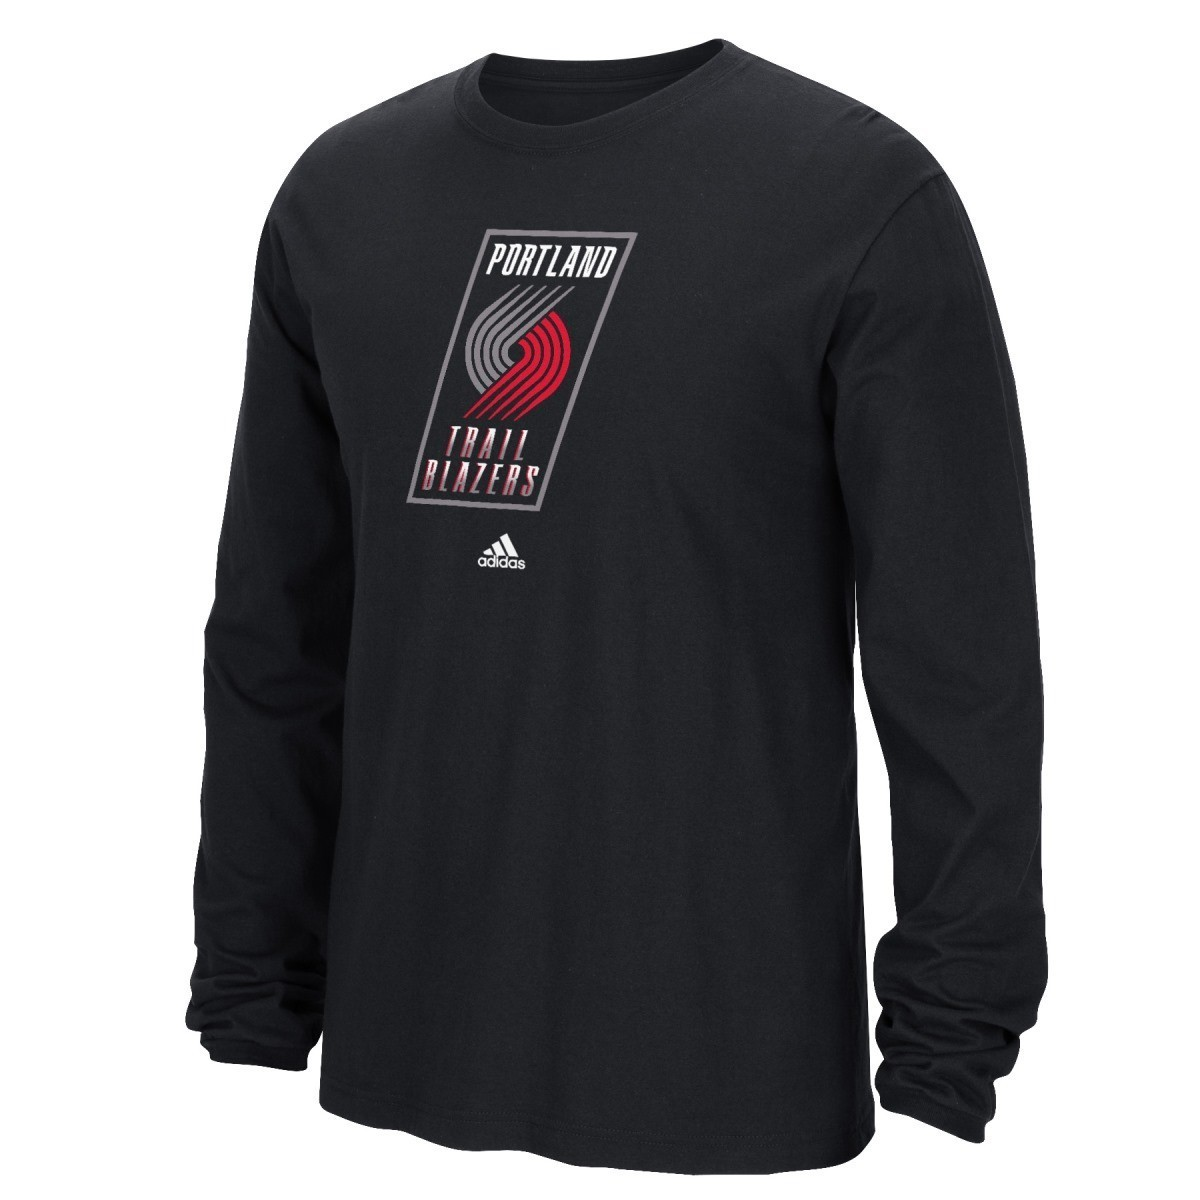 Portland Trail Blazers Adidas NBA Full Primary Logo Long Sleeve T-Shirt - Black